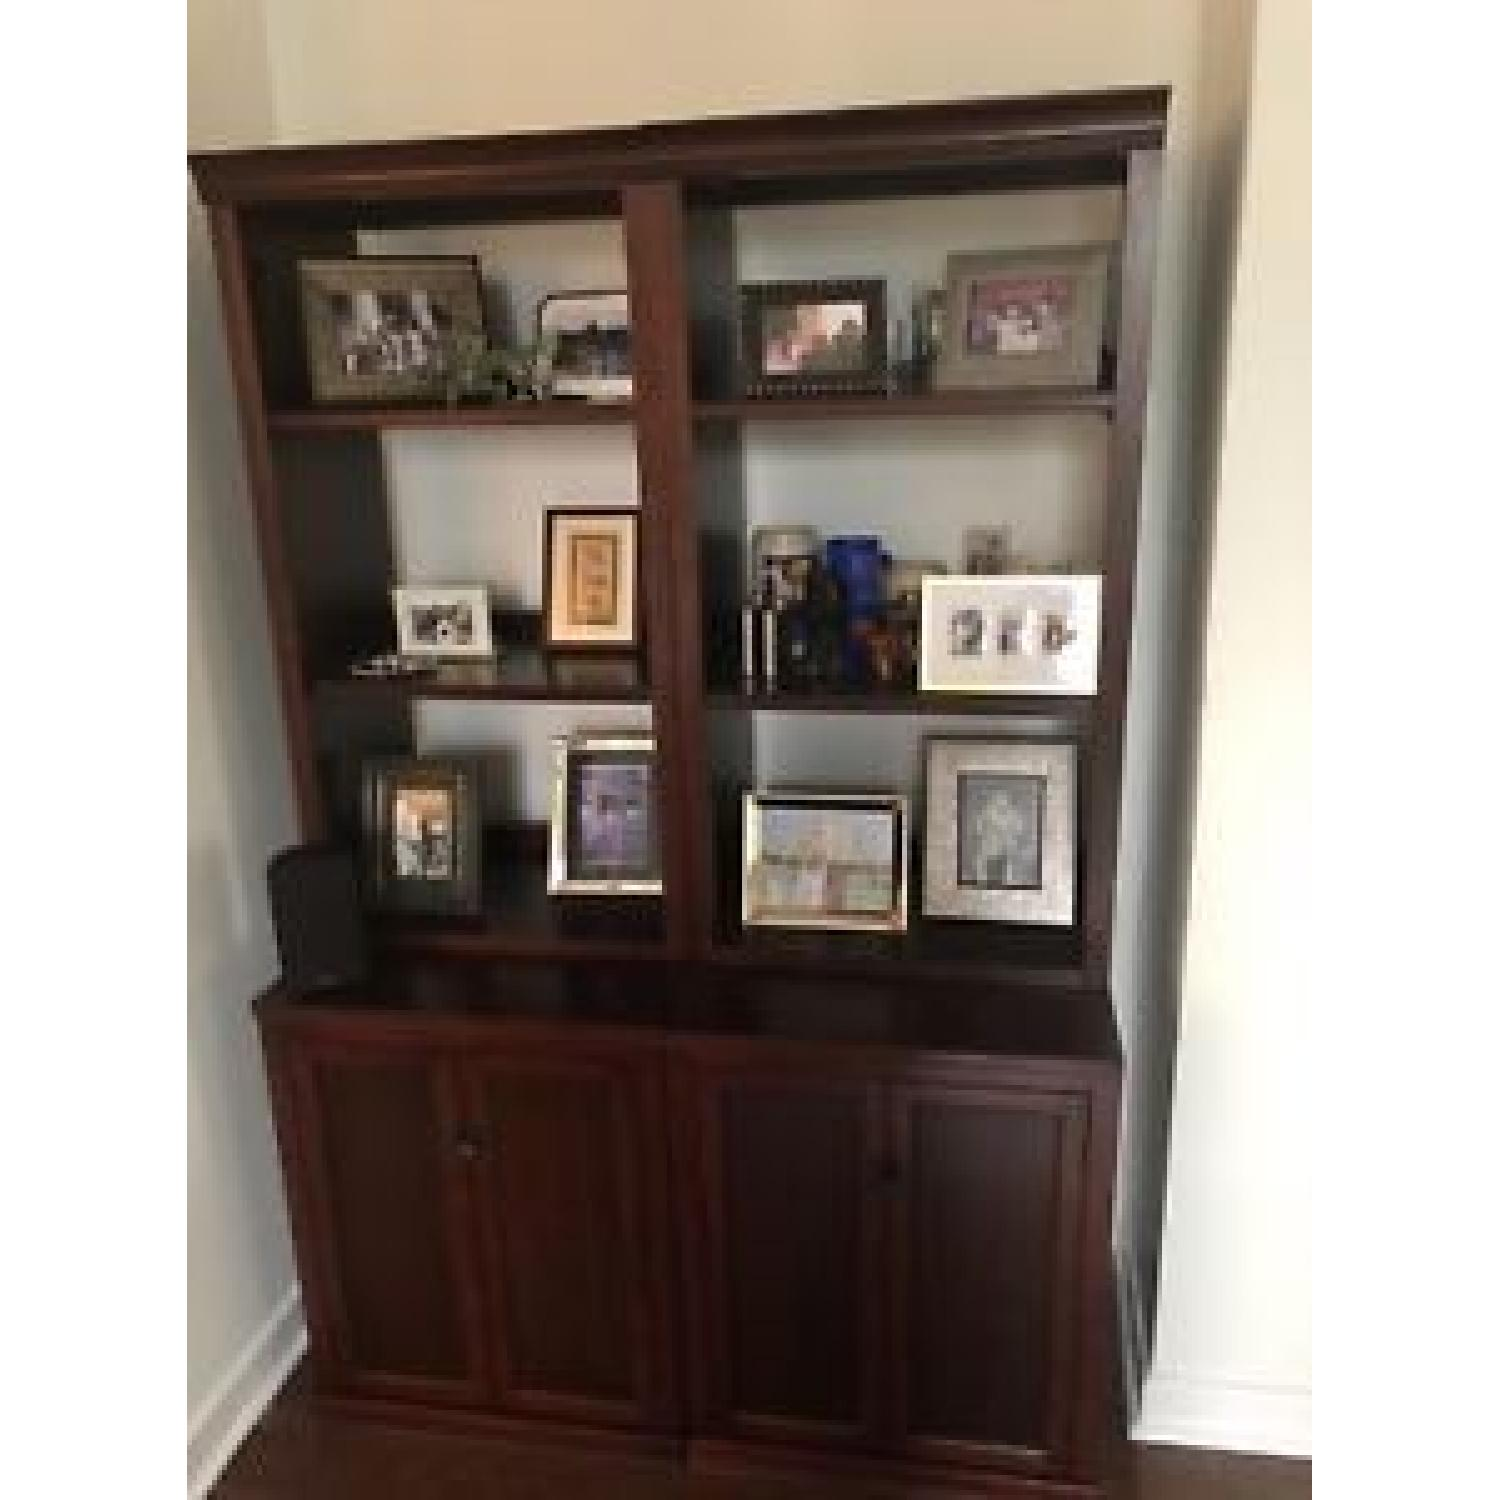 Pottery Barn Logan Bookcase w/ Cabinet Doors-3